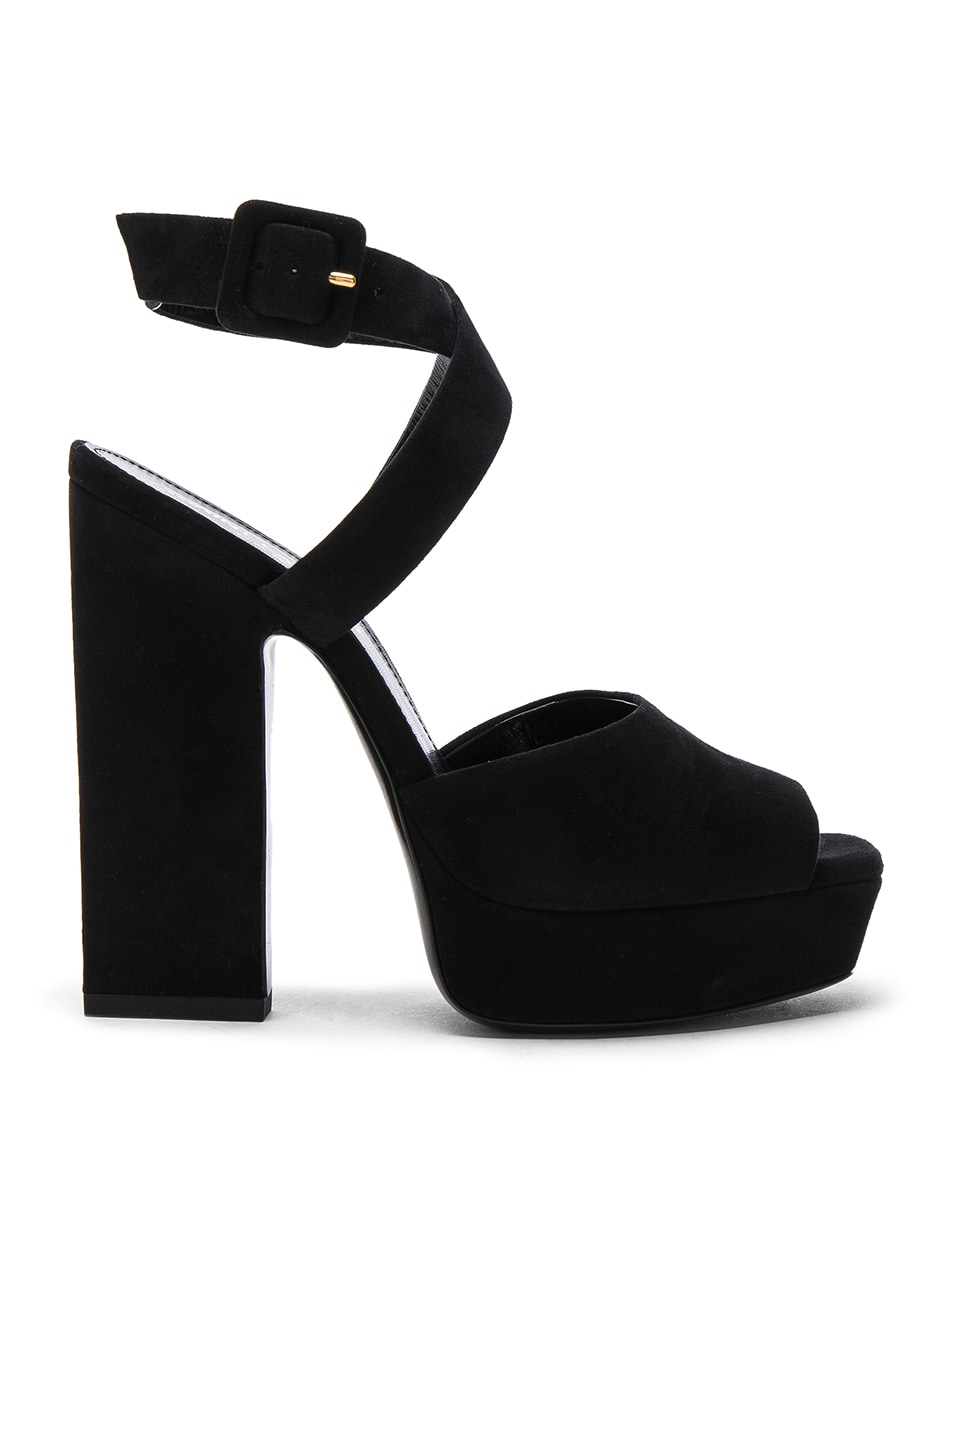 Debbie Suede Platform Sandals - Nero Size 9.5 in Black